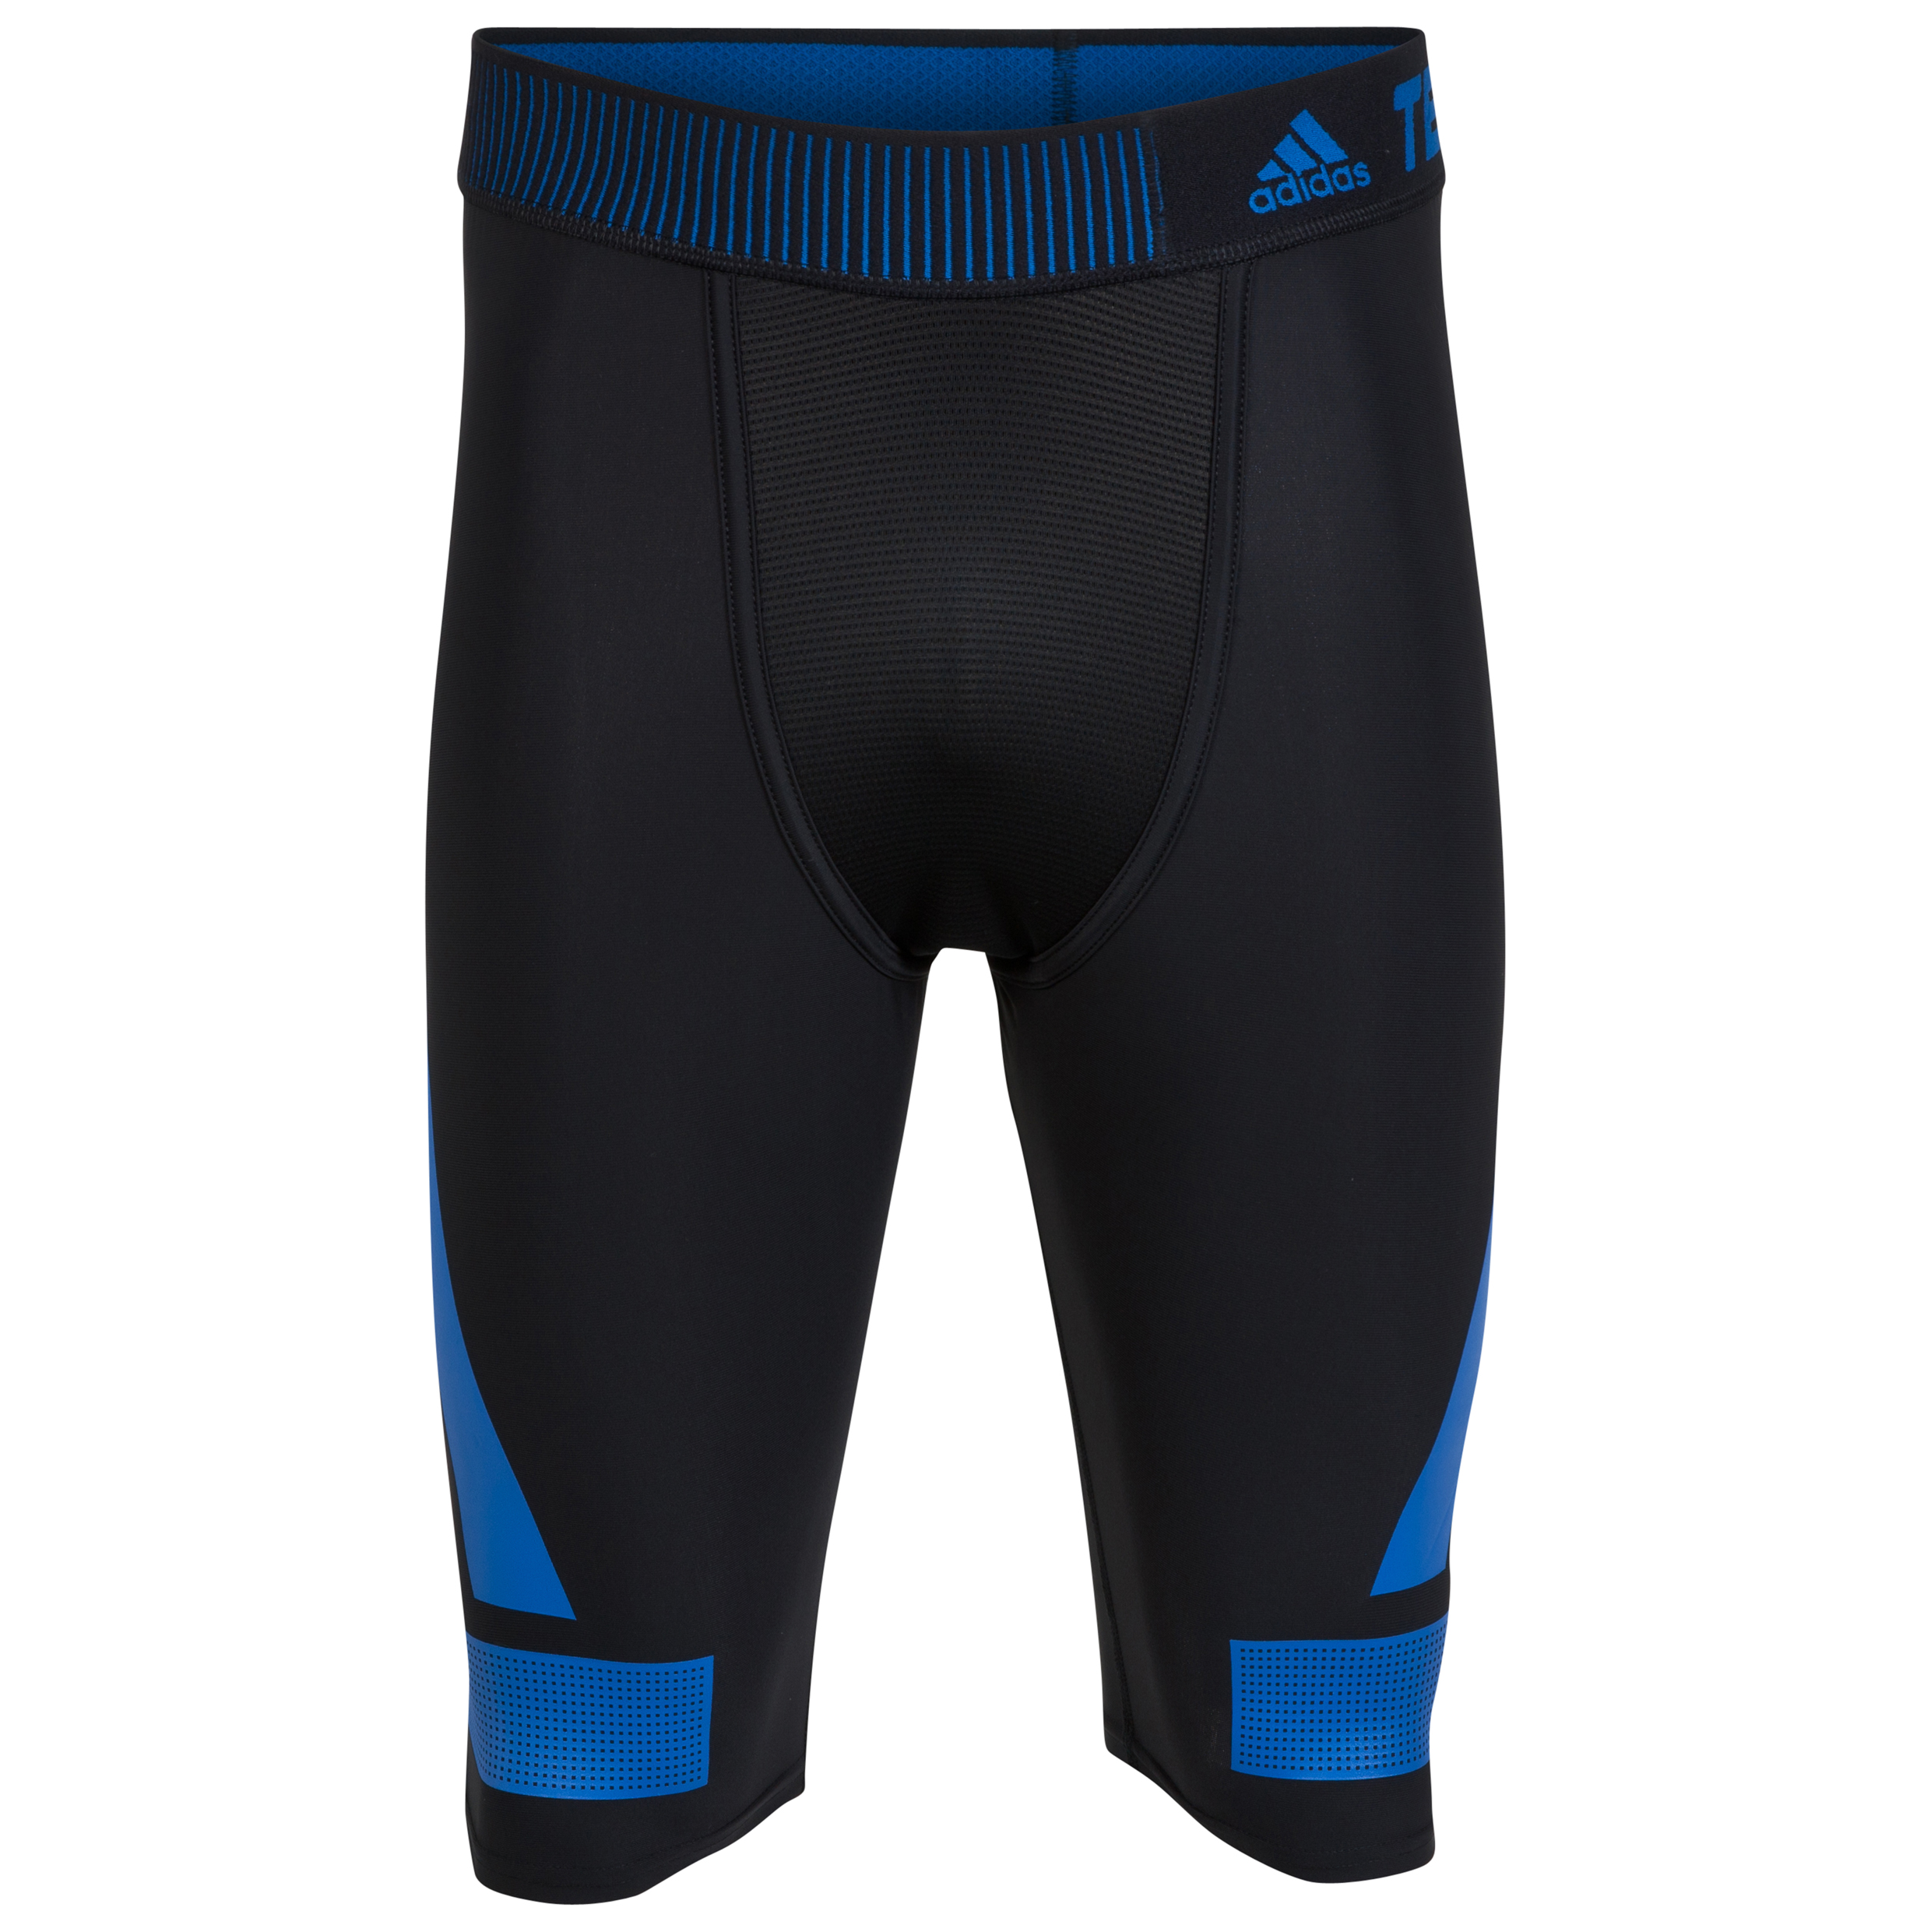 Adidas TechFit Power Base Layer Shorts Black